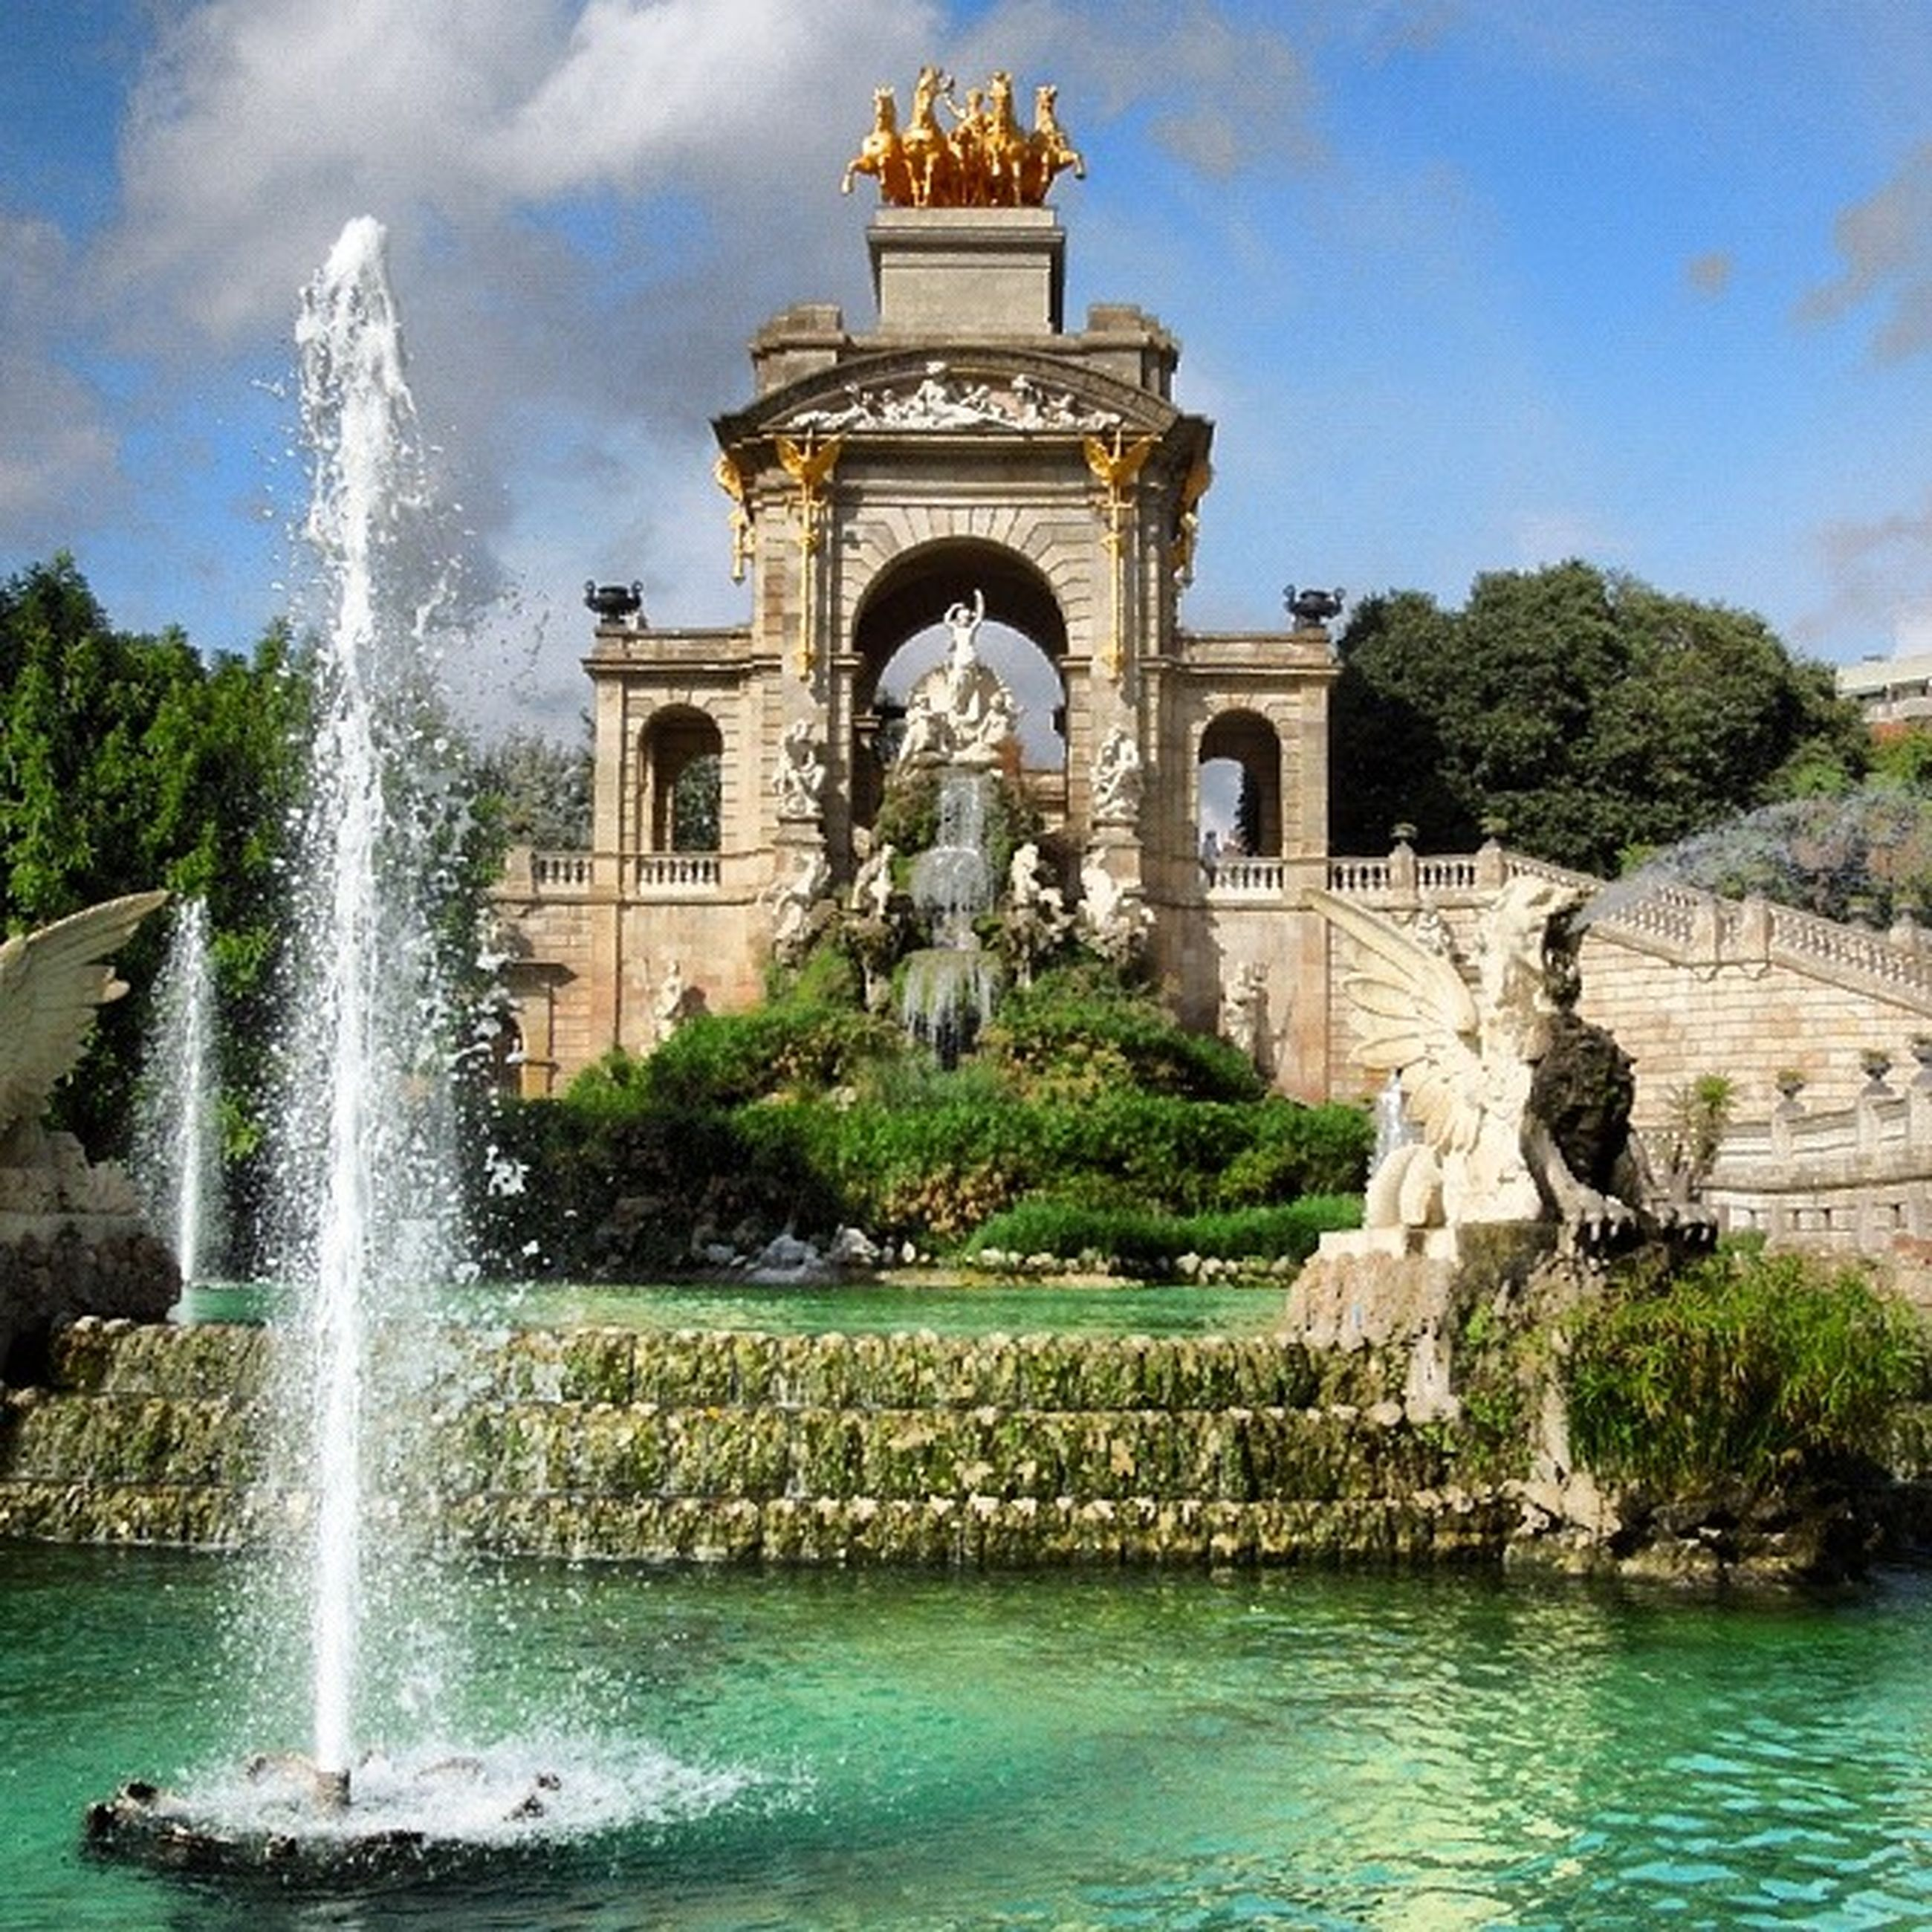 water, fountain, architecture, built structure, building exterior, sky, statue, sculpture, famous place, travel destinations, tree, motion, art, art and craft, history, splashing, waterfront, tourism, travel, arch